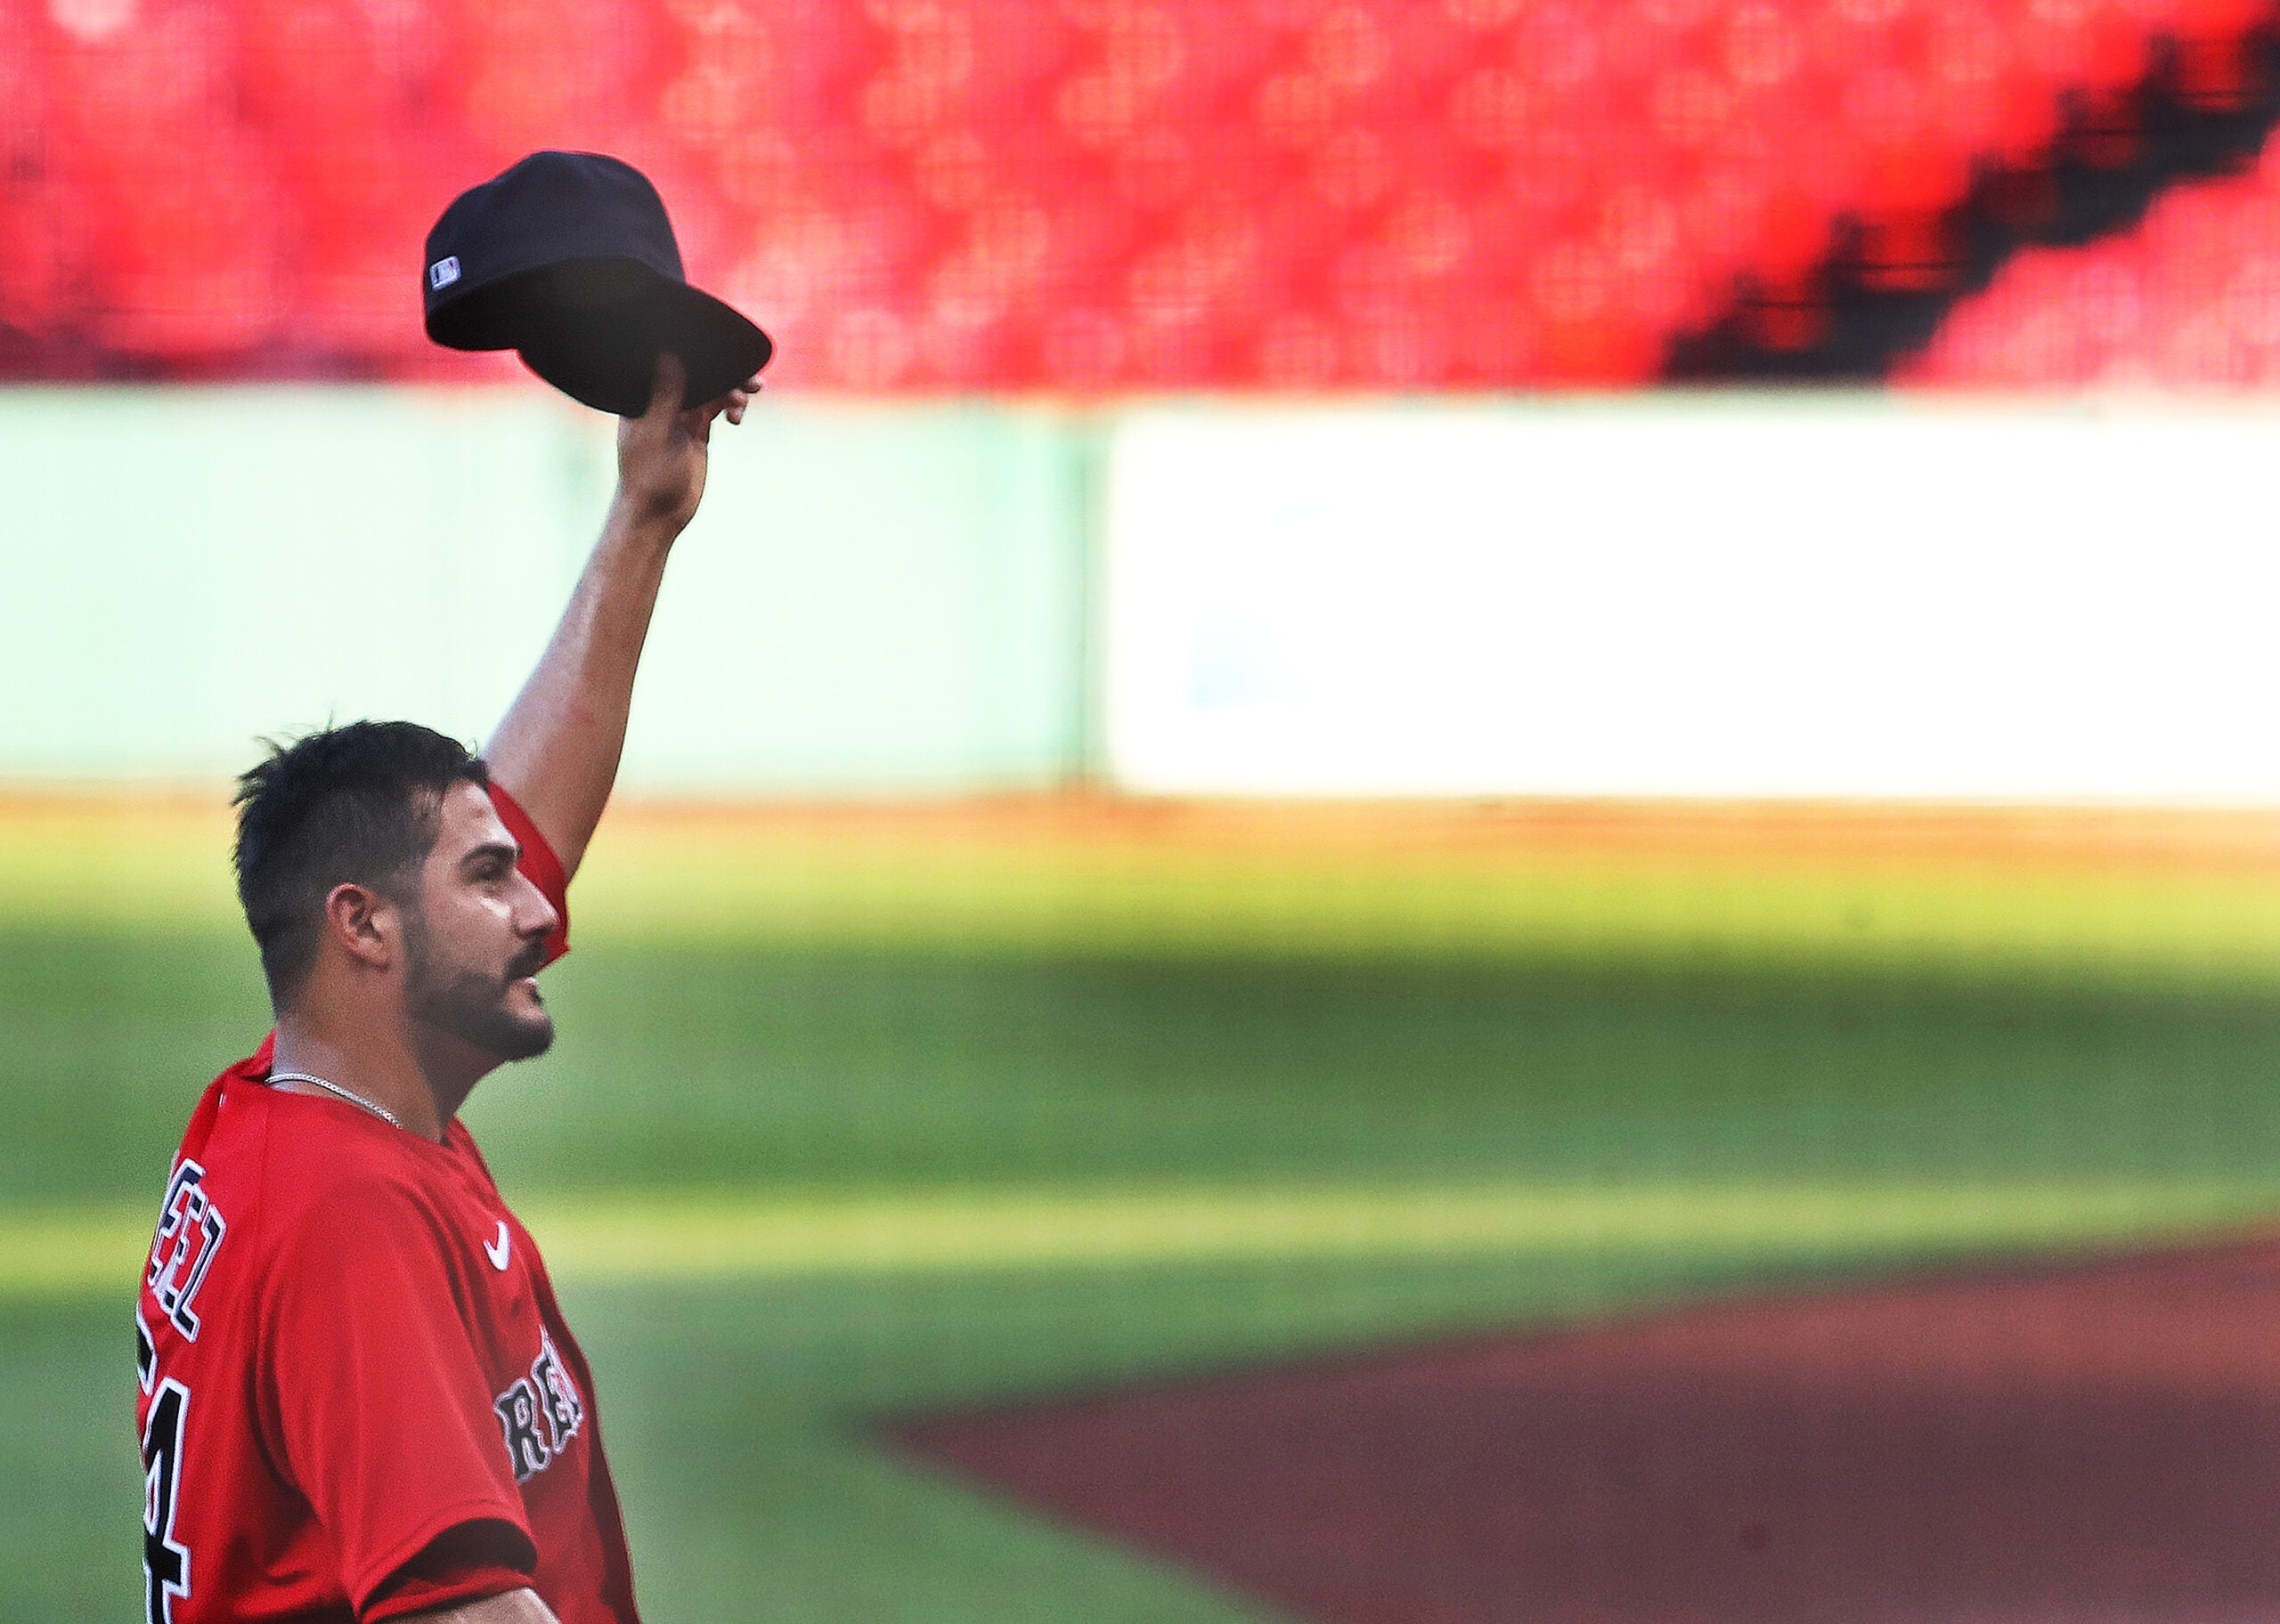 Martin Perez tipping his cap to the nonexistent crowd at Fenway Park last summer is just the sort of thing we've come to expect from a character like him.